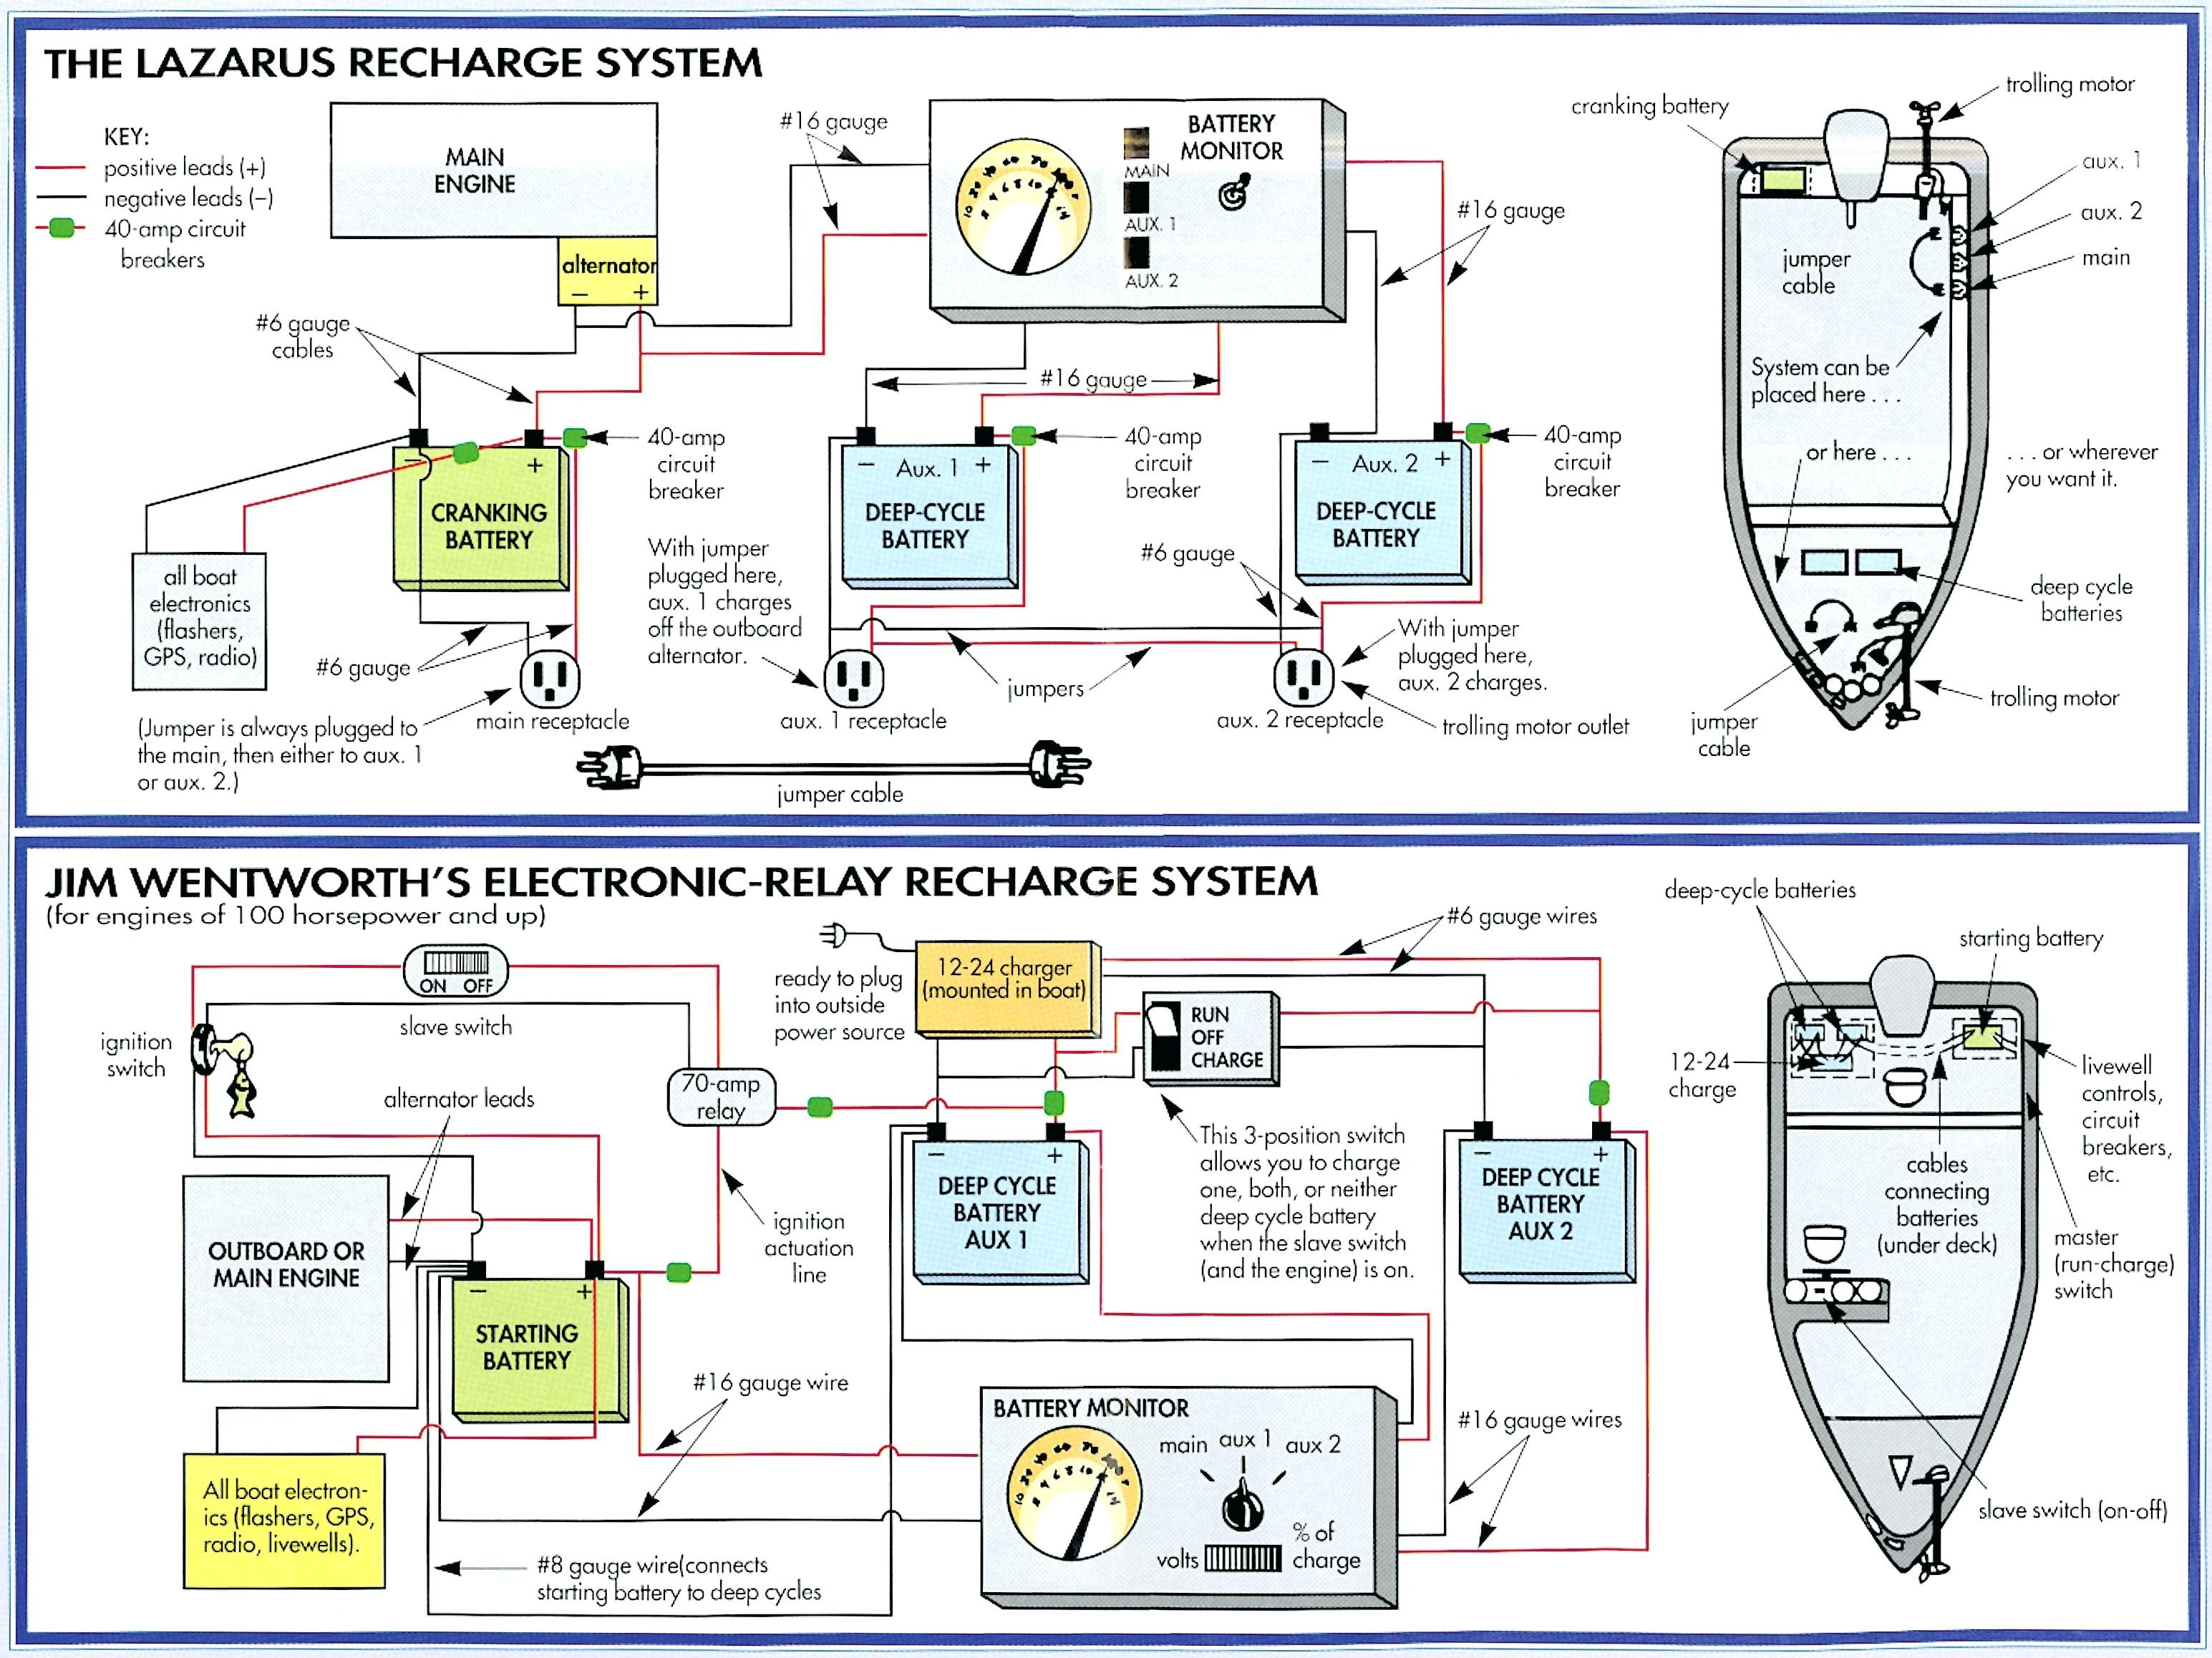 perko dual battery switch wiring diagram recharge on the run system in fisherman and marine charger